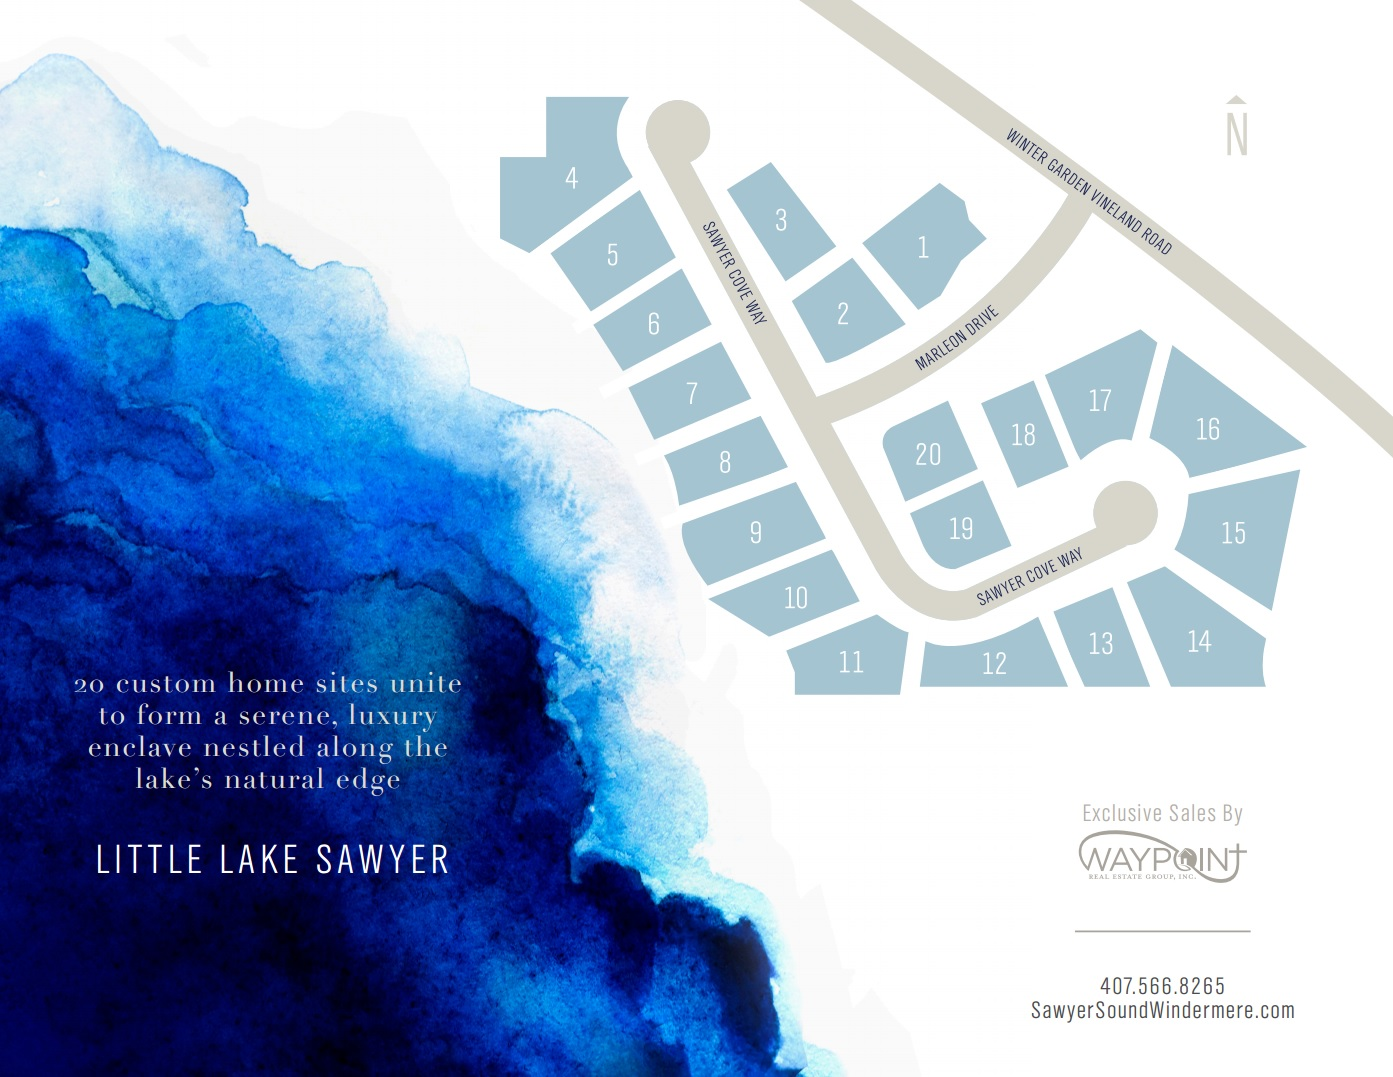 Sawyer Sound Community Map